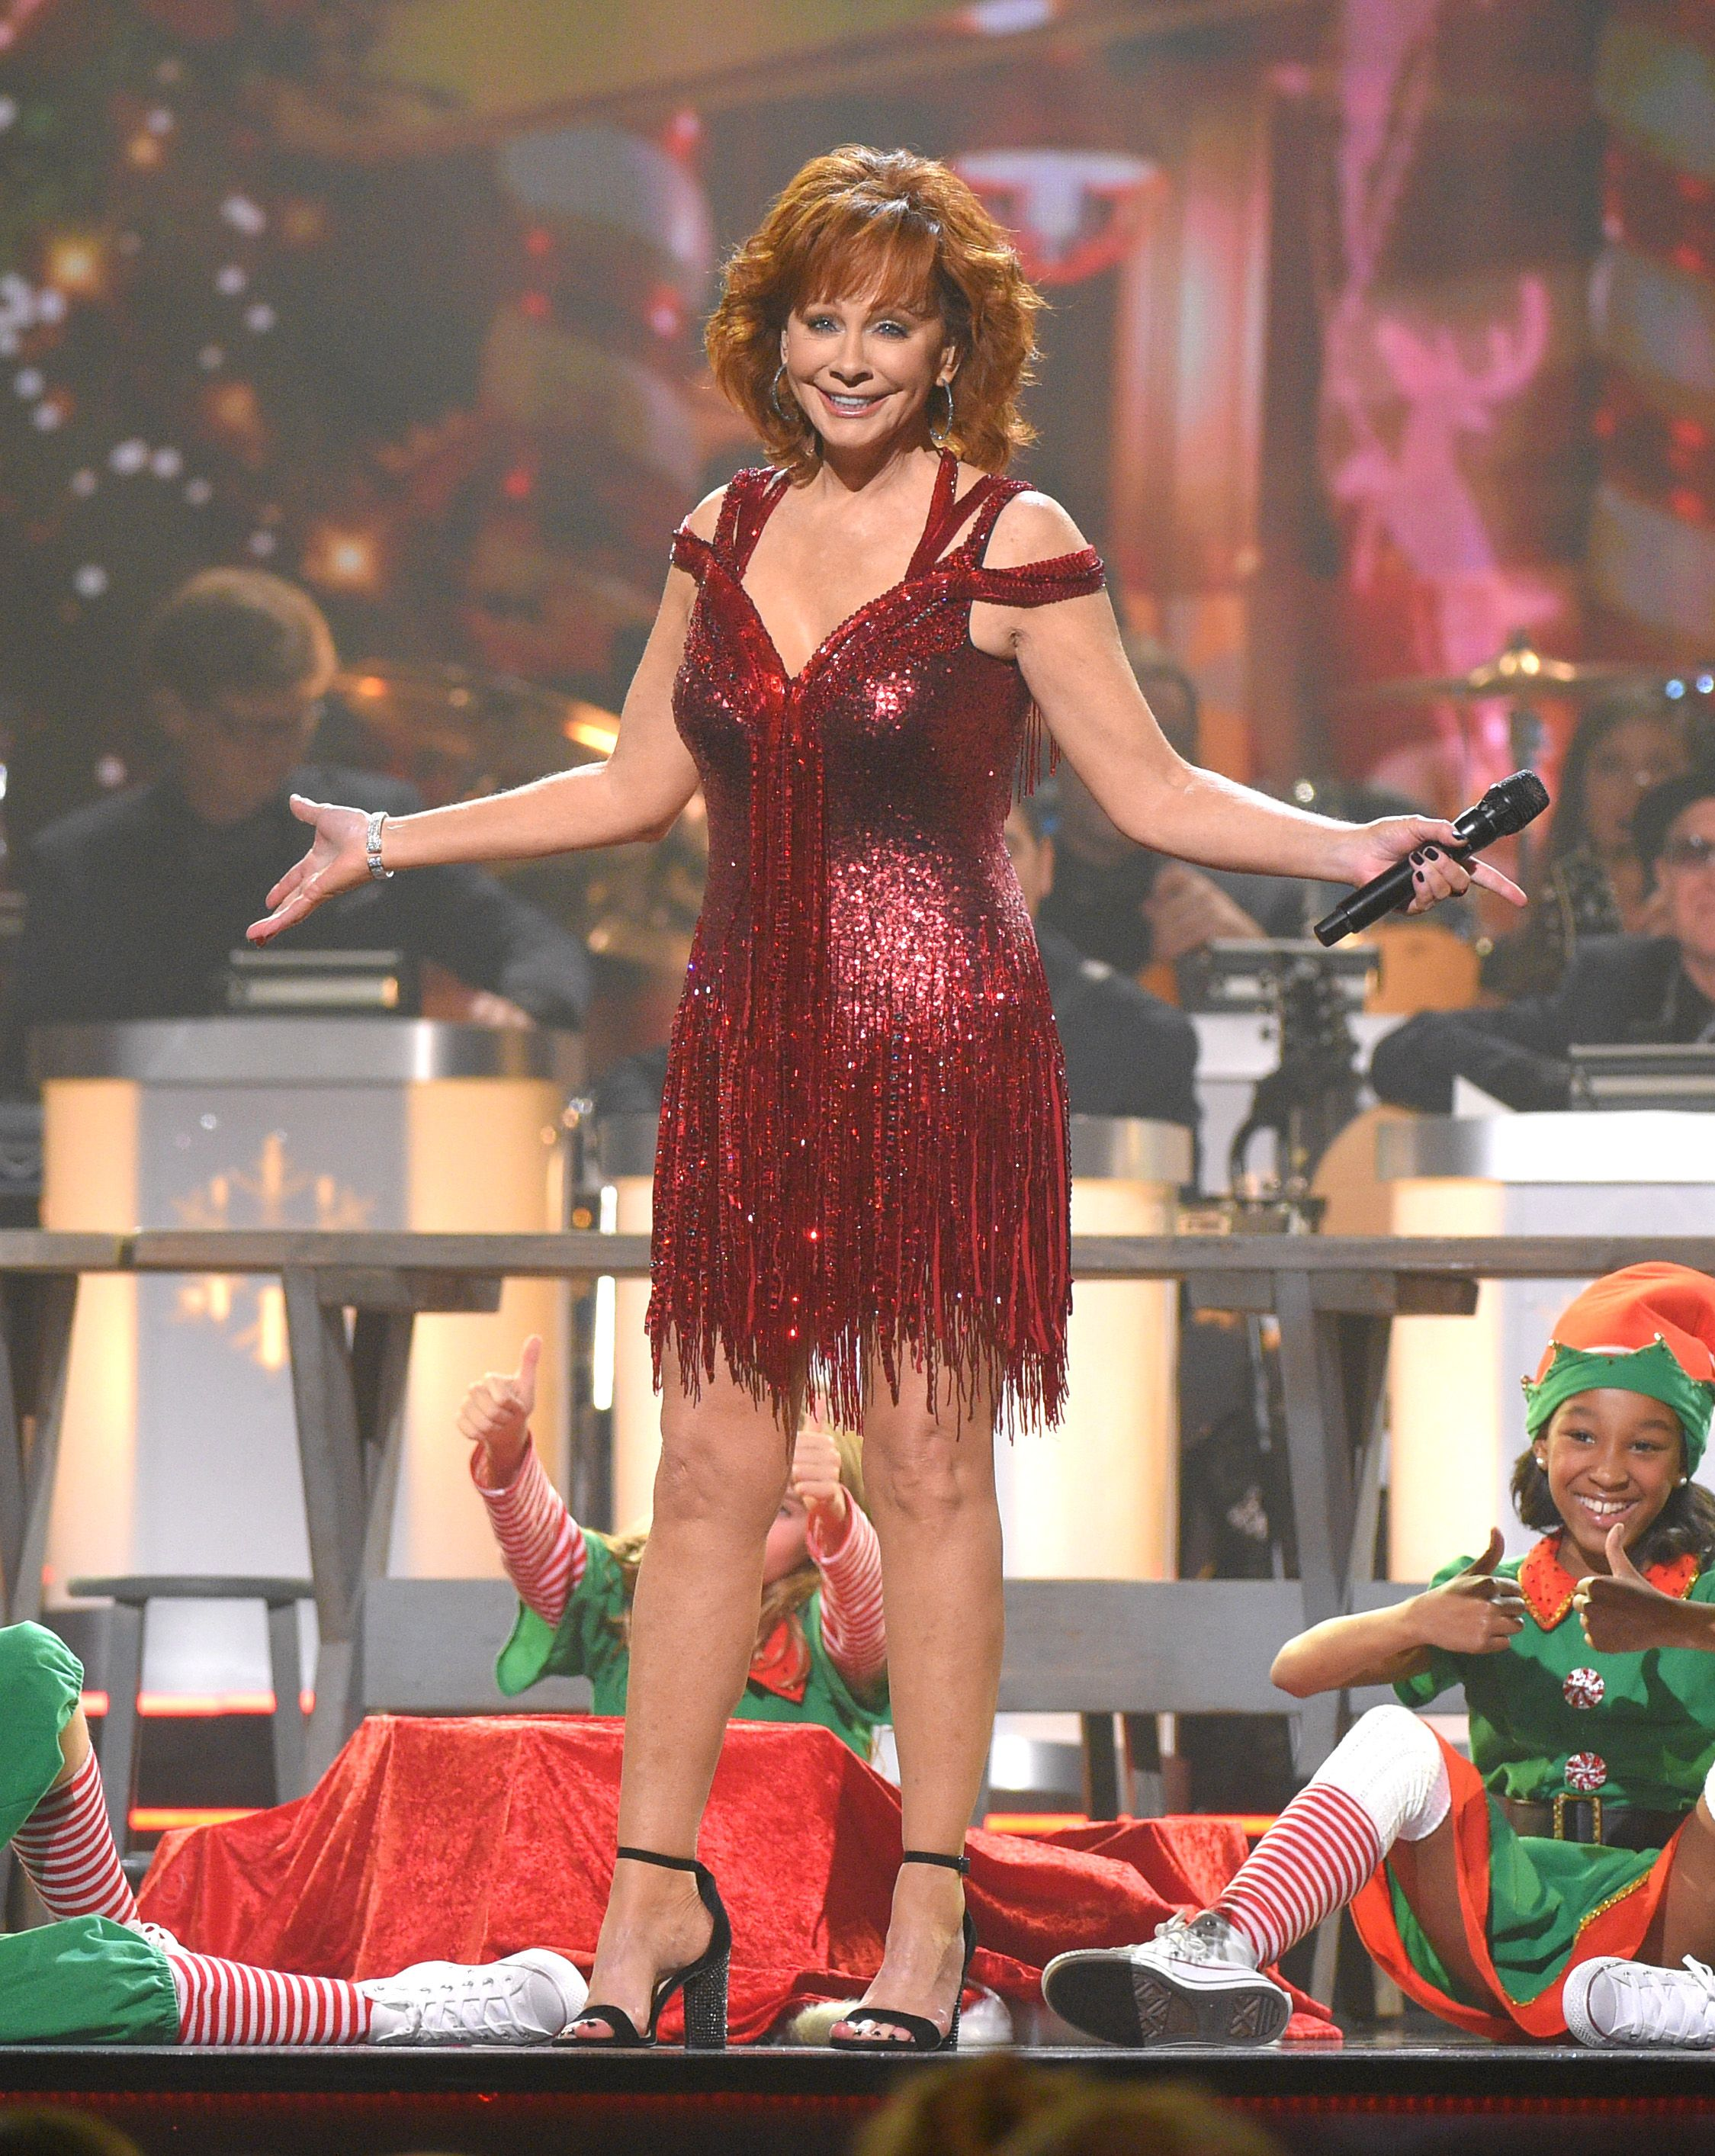 Cma Christmas Special 2019.Reba Mcentire Stuns In A Sparkly Mini Dress At The Cma